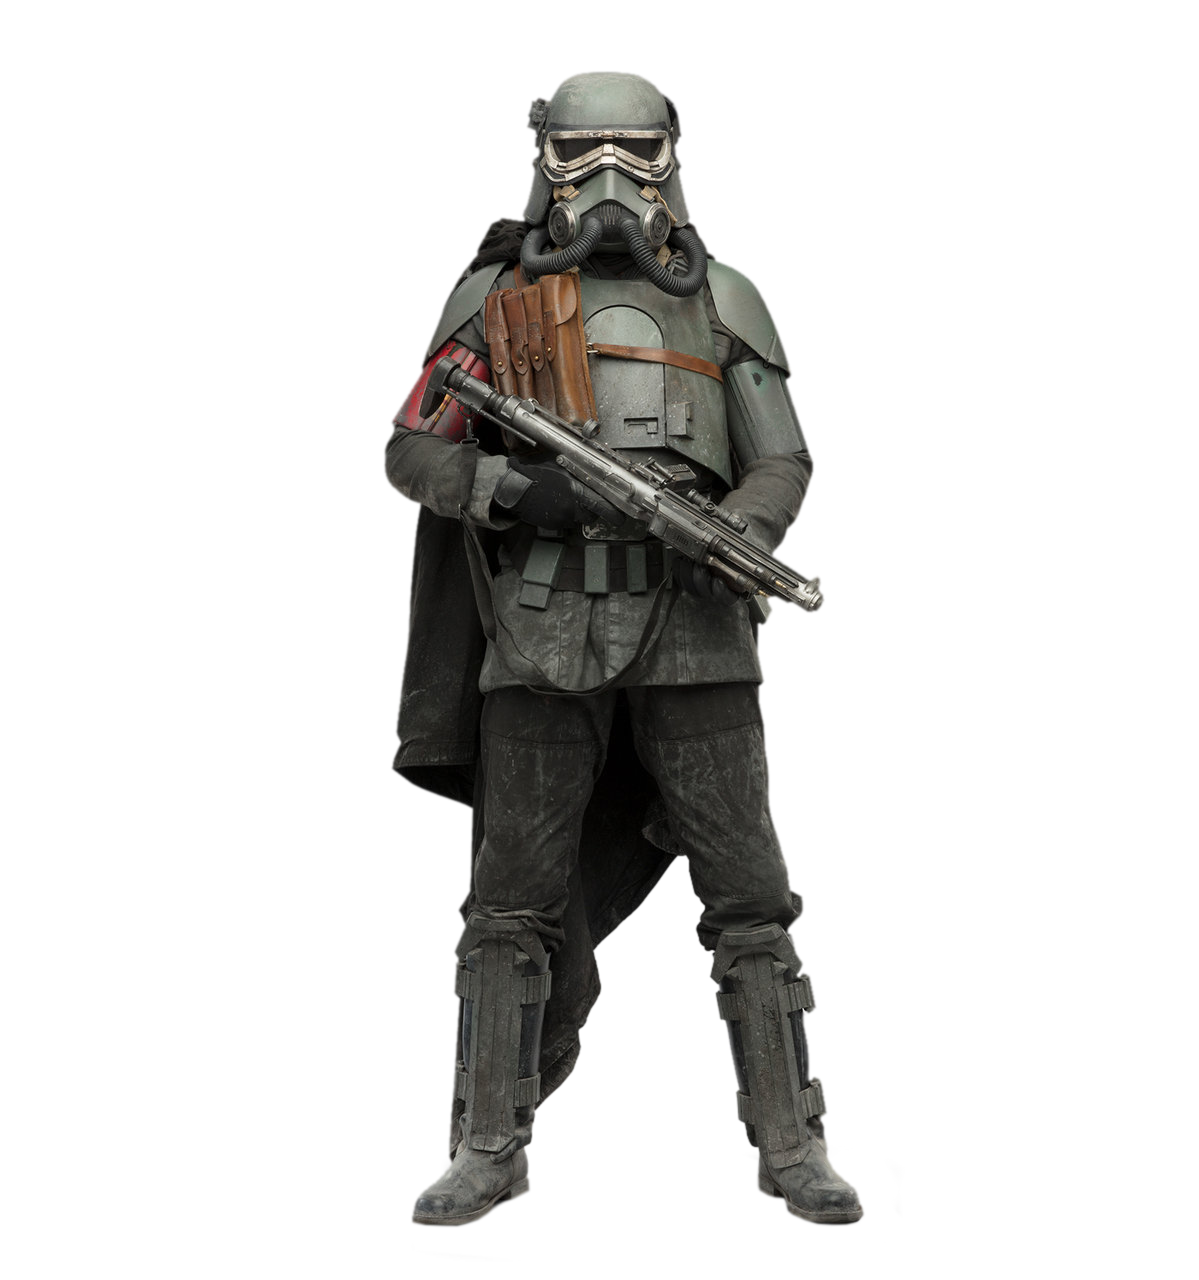 Mudtrooper Solo A Star Wars Story Cut Out Characters With